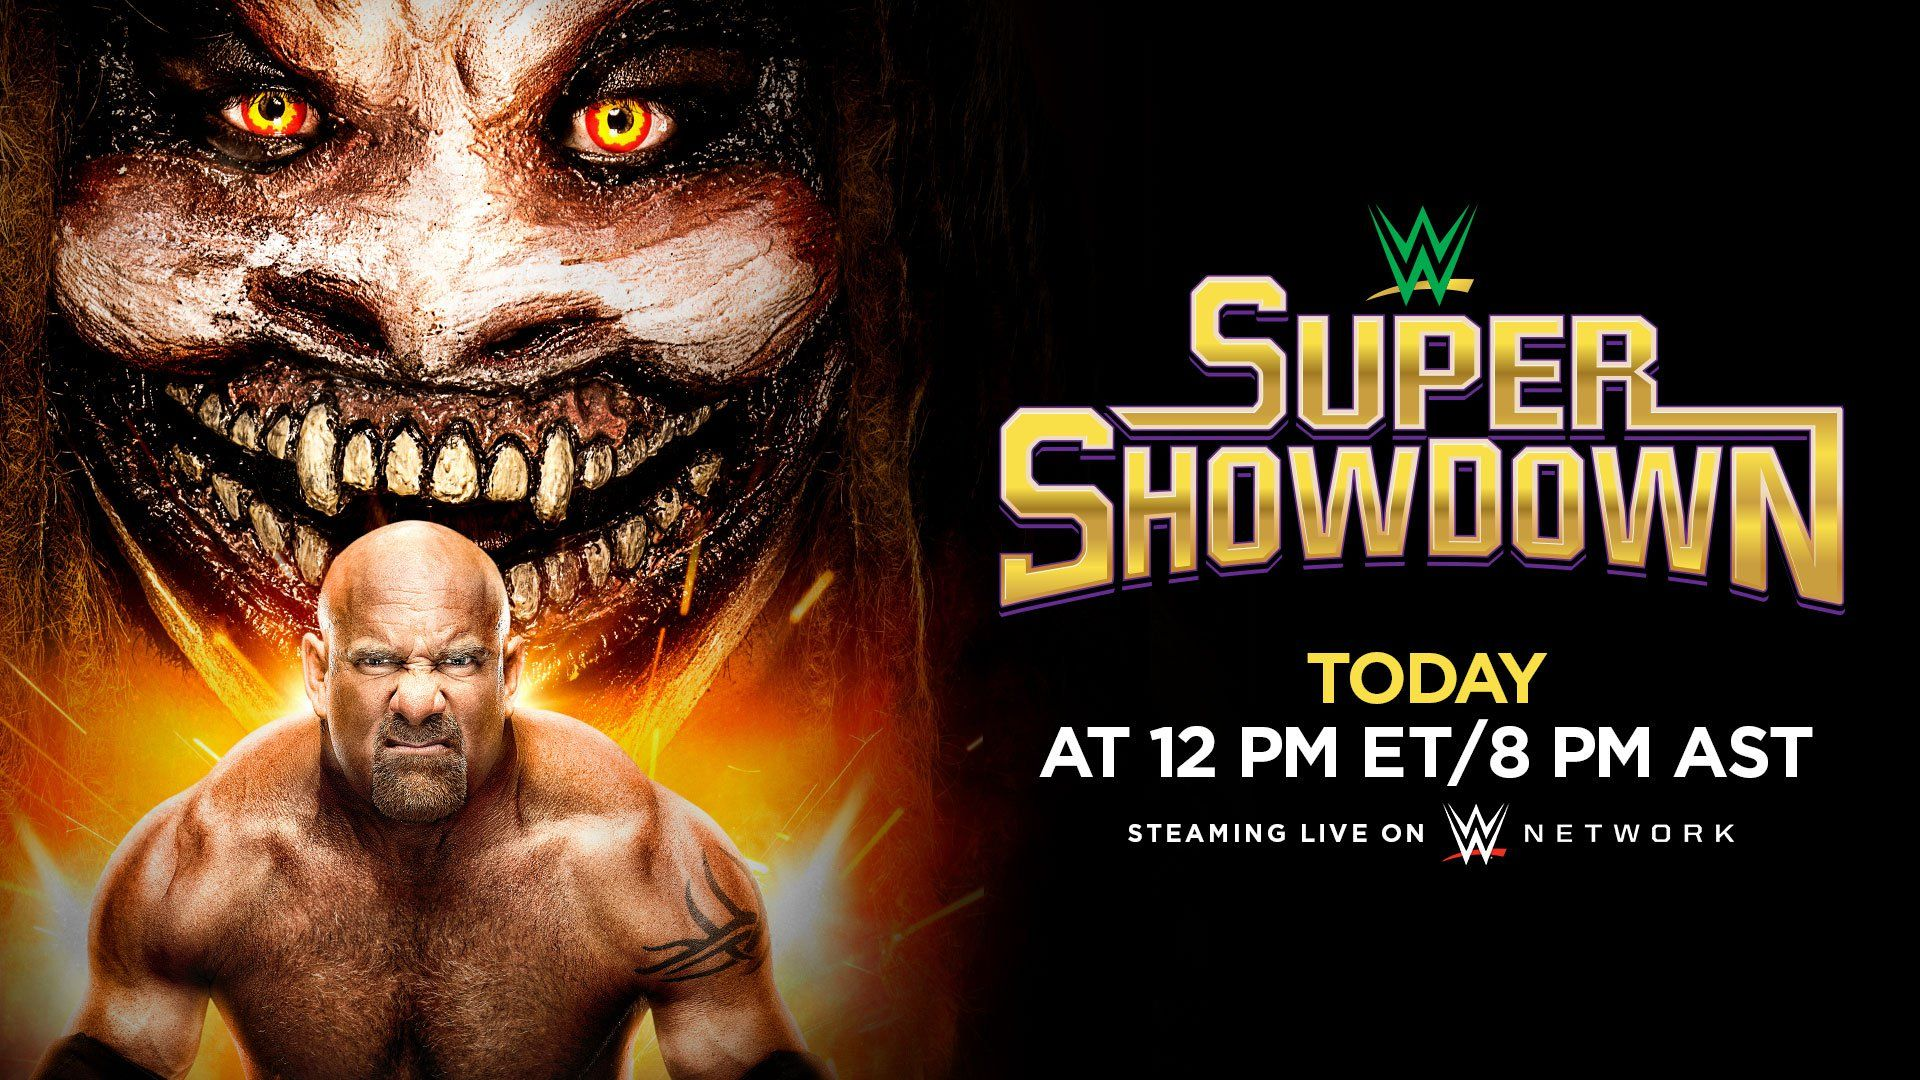 Full Wwe Super Showdown 2020 Results Videos Galleries And